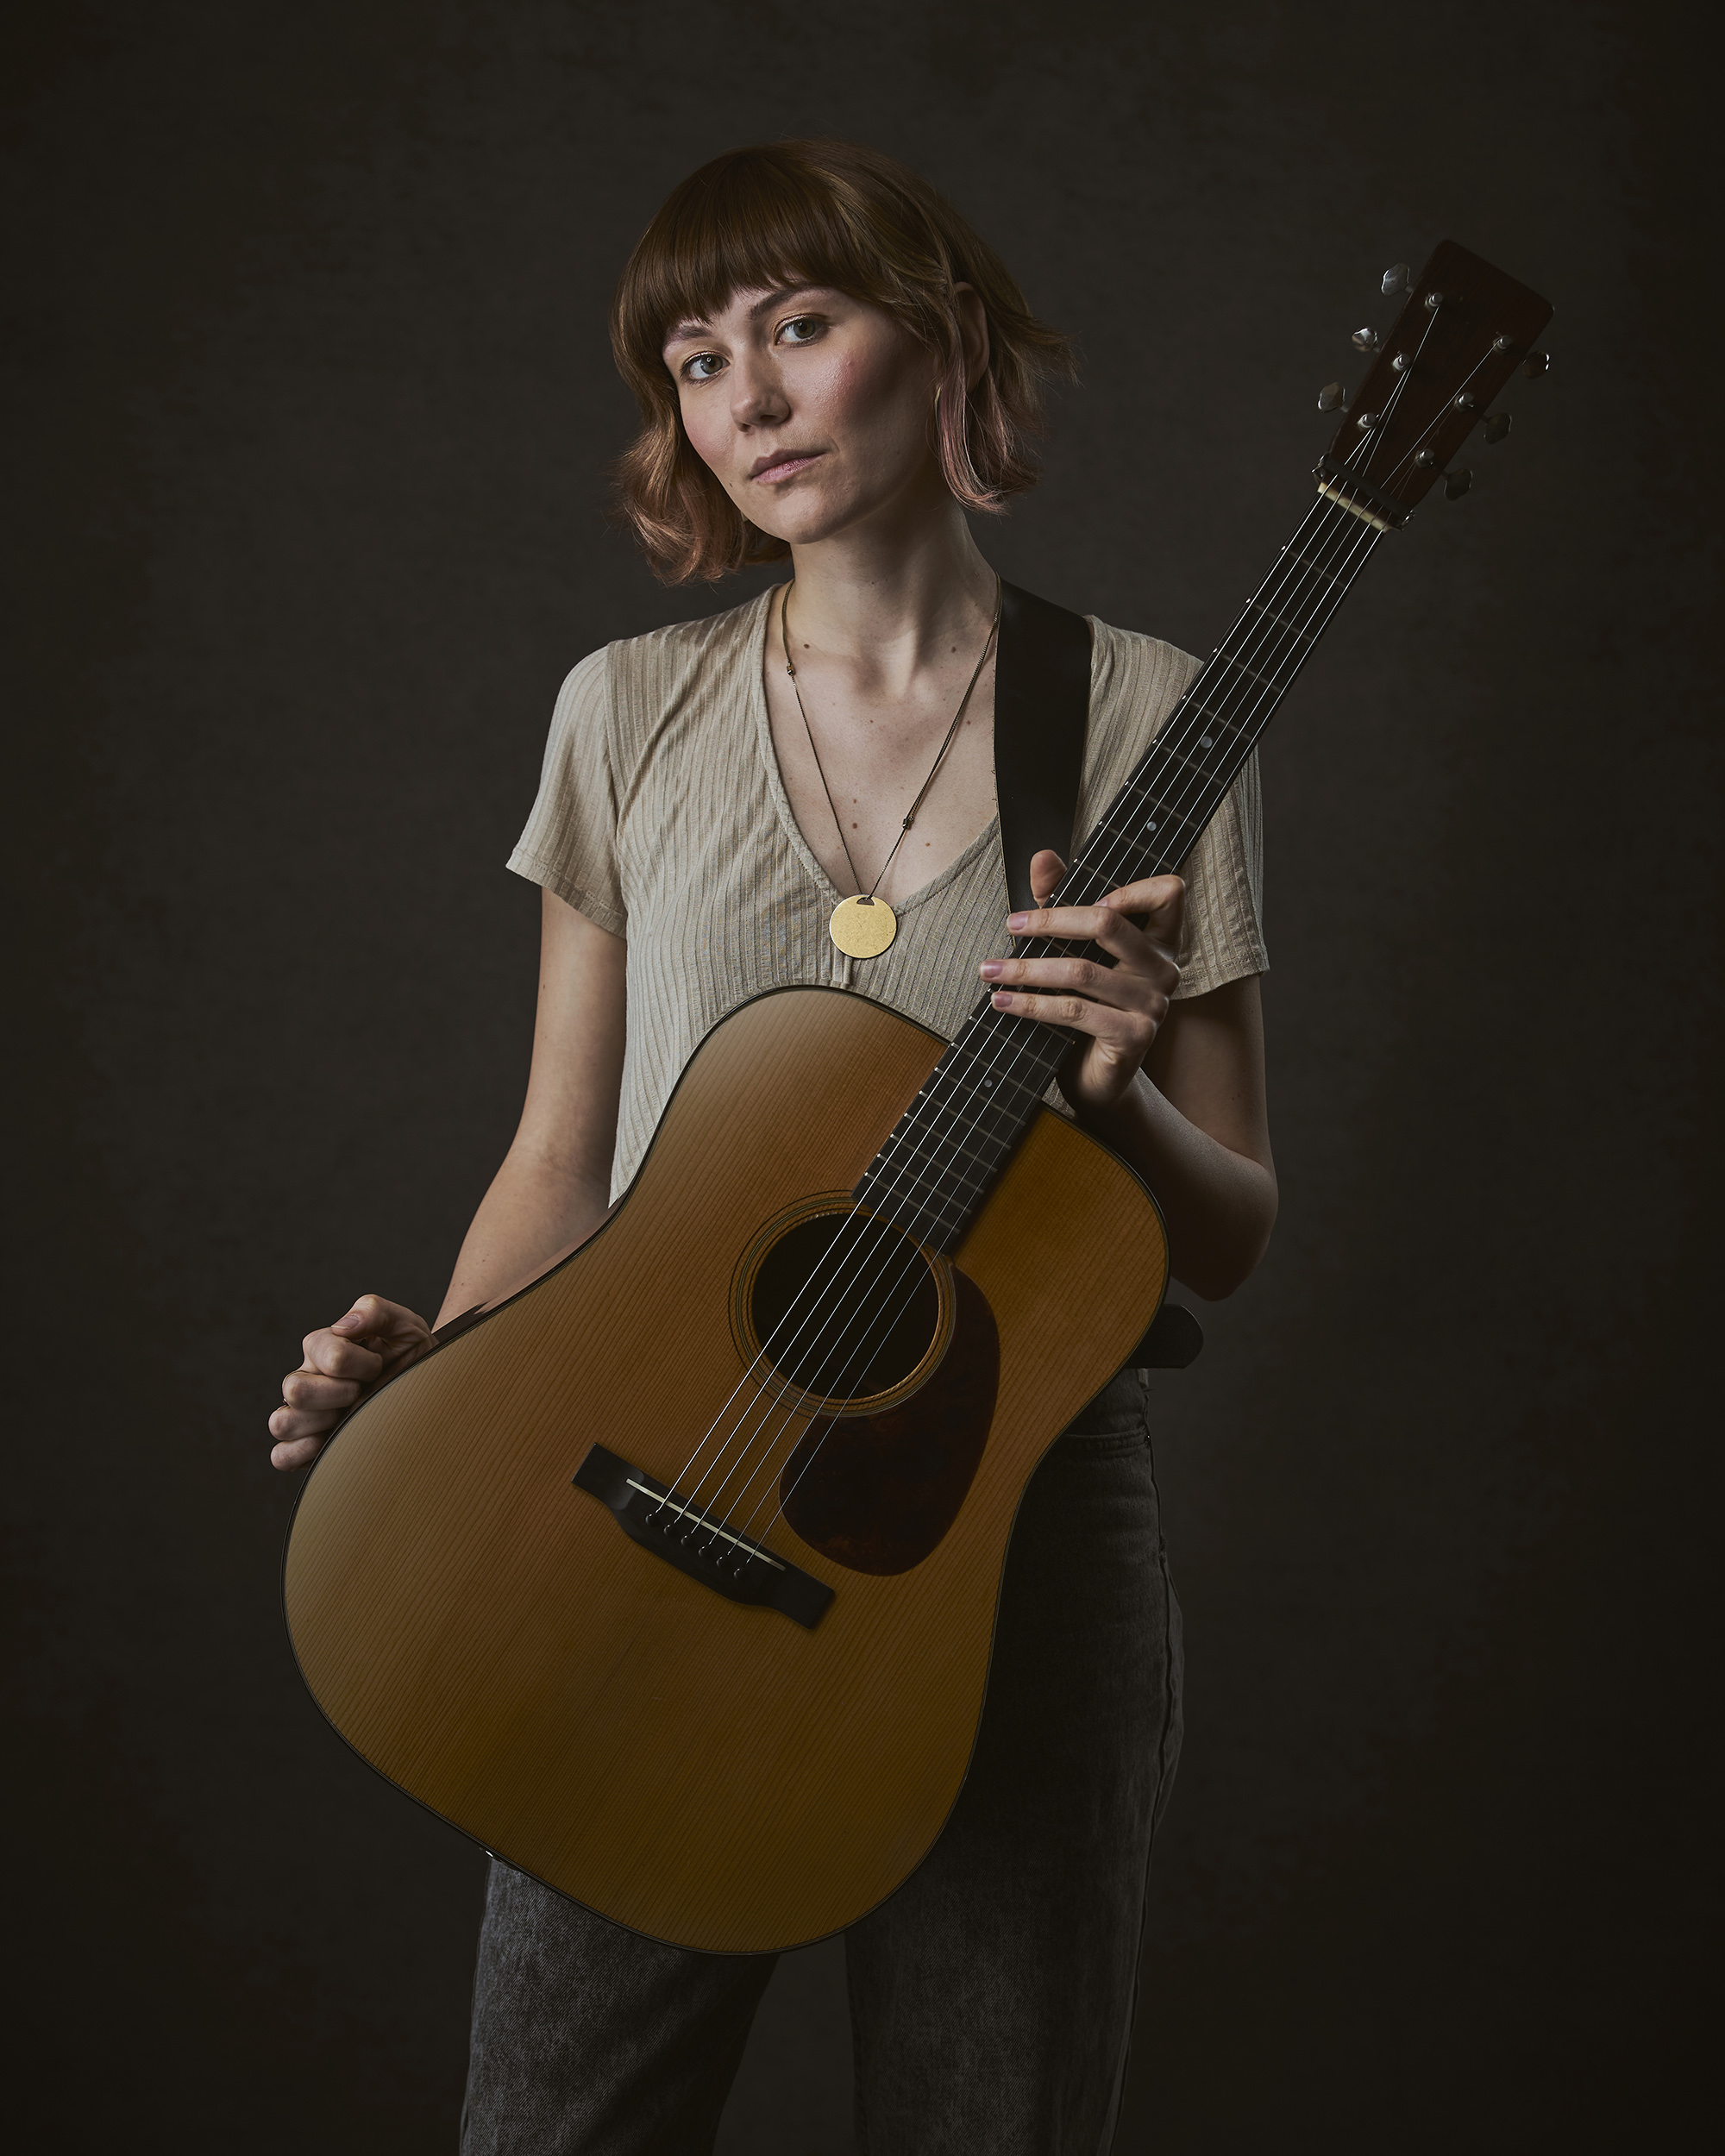 Molly Tuttle portrait photograph with an acoustic guitar